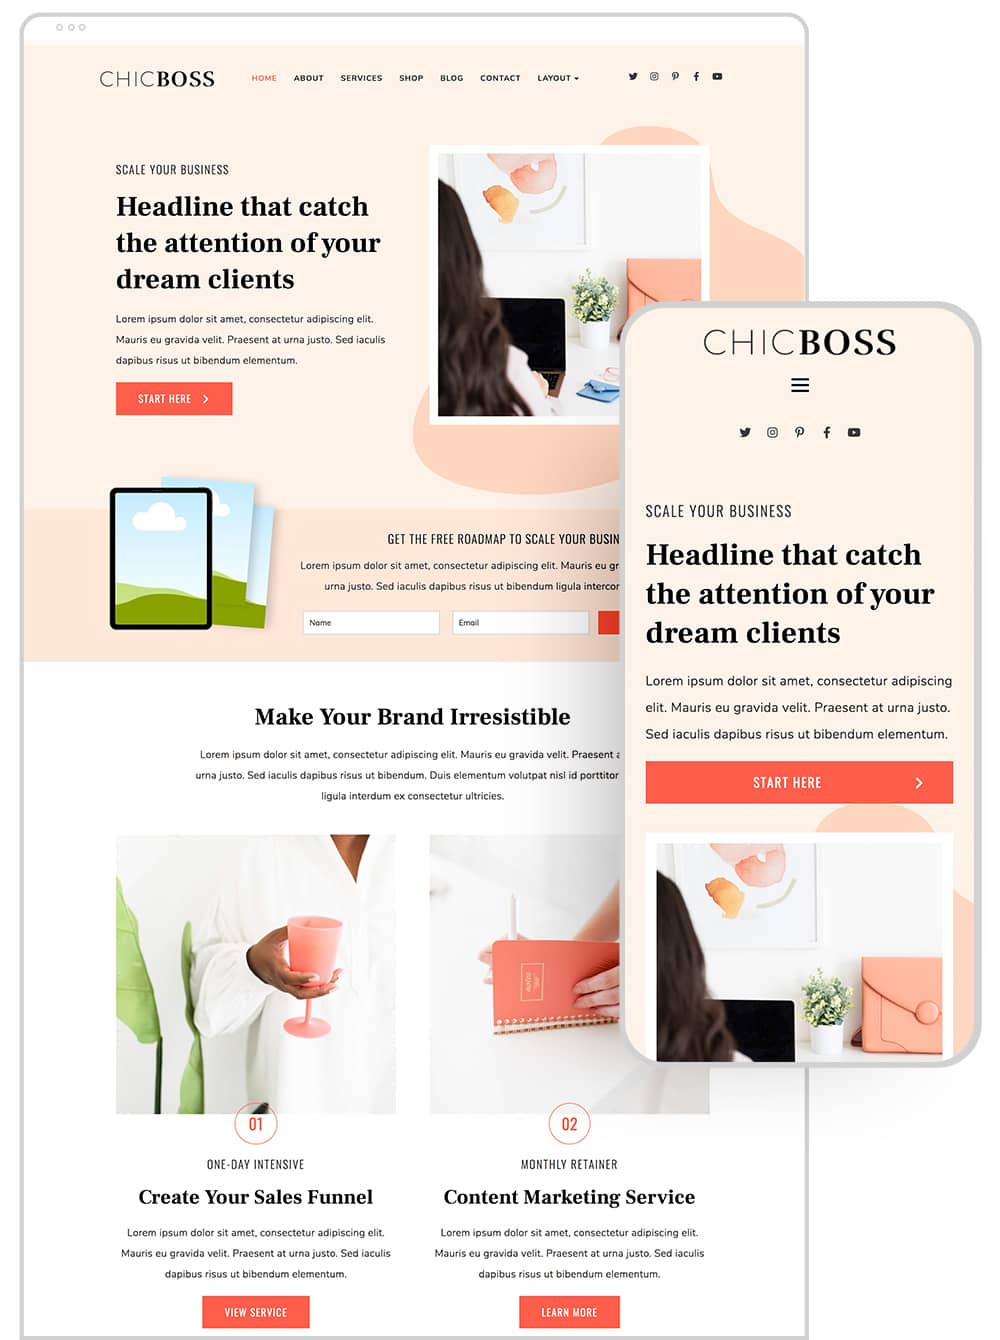 Home page design of ChicBoss digital product wordpress theme